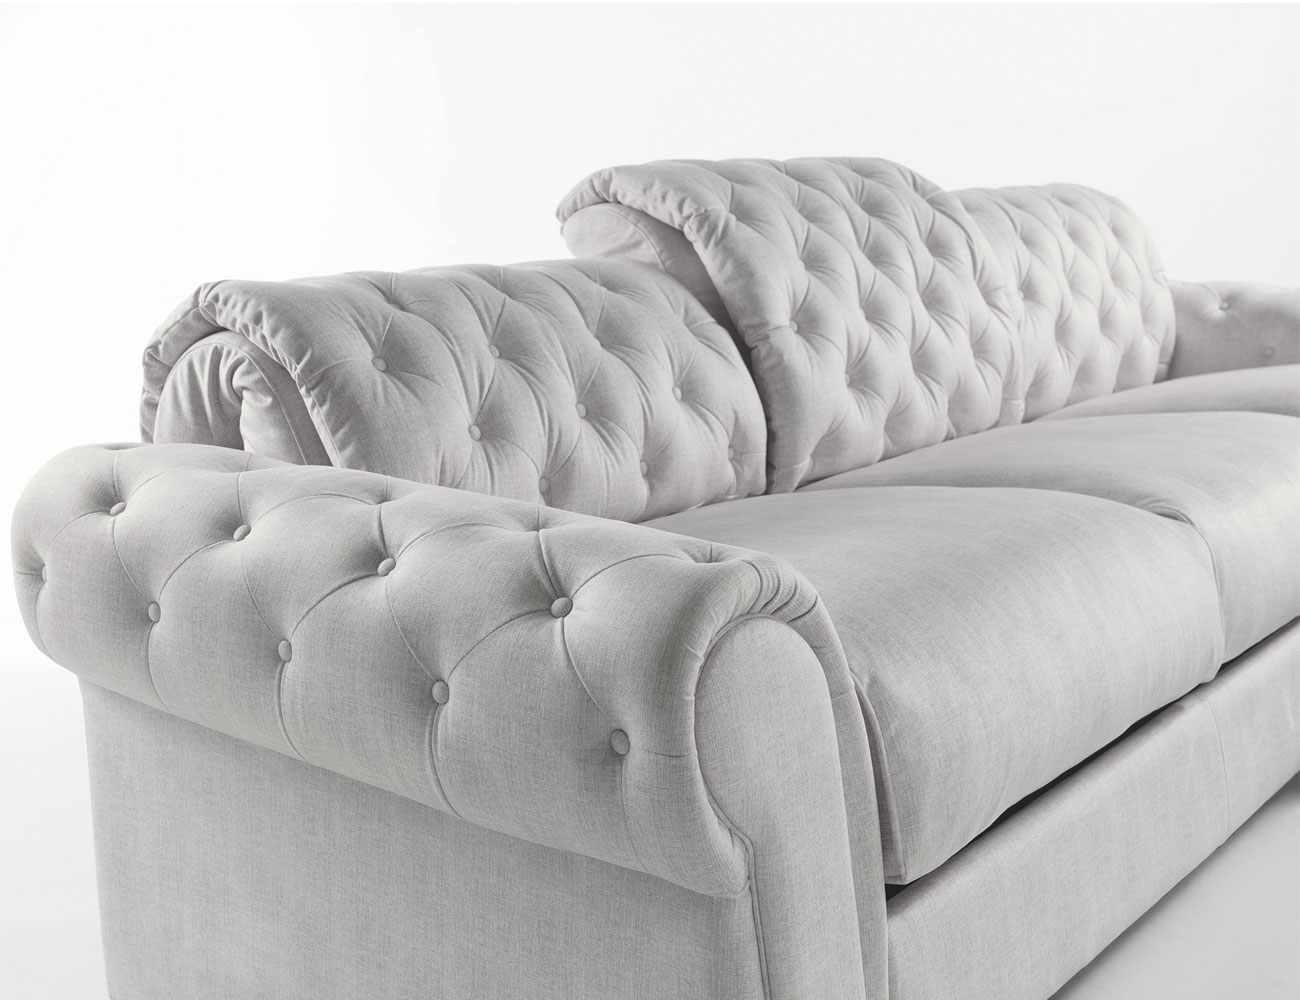 Sofa chaiselongue gran lujo decorativo capitone blanco tela 139